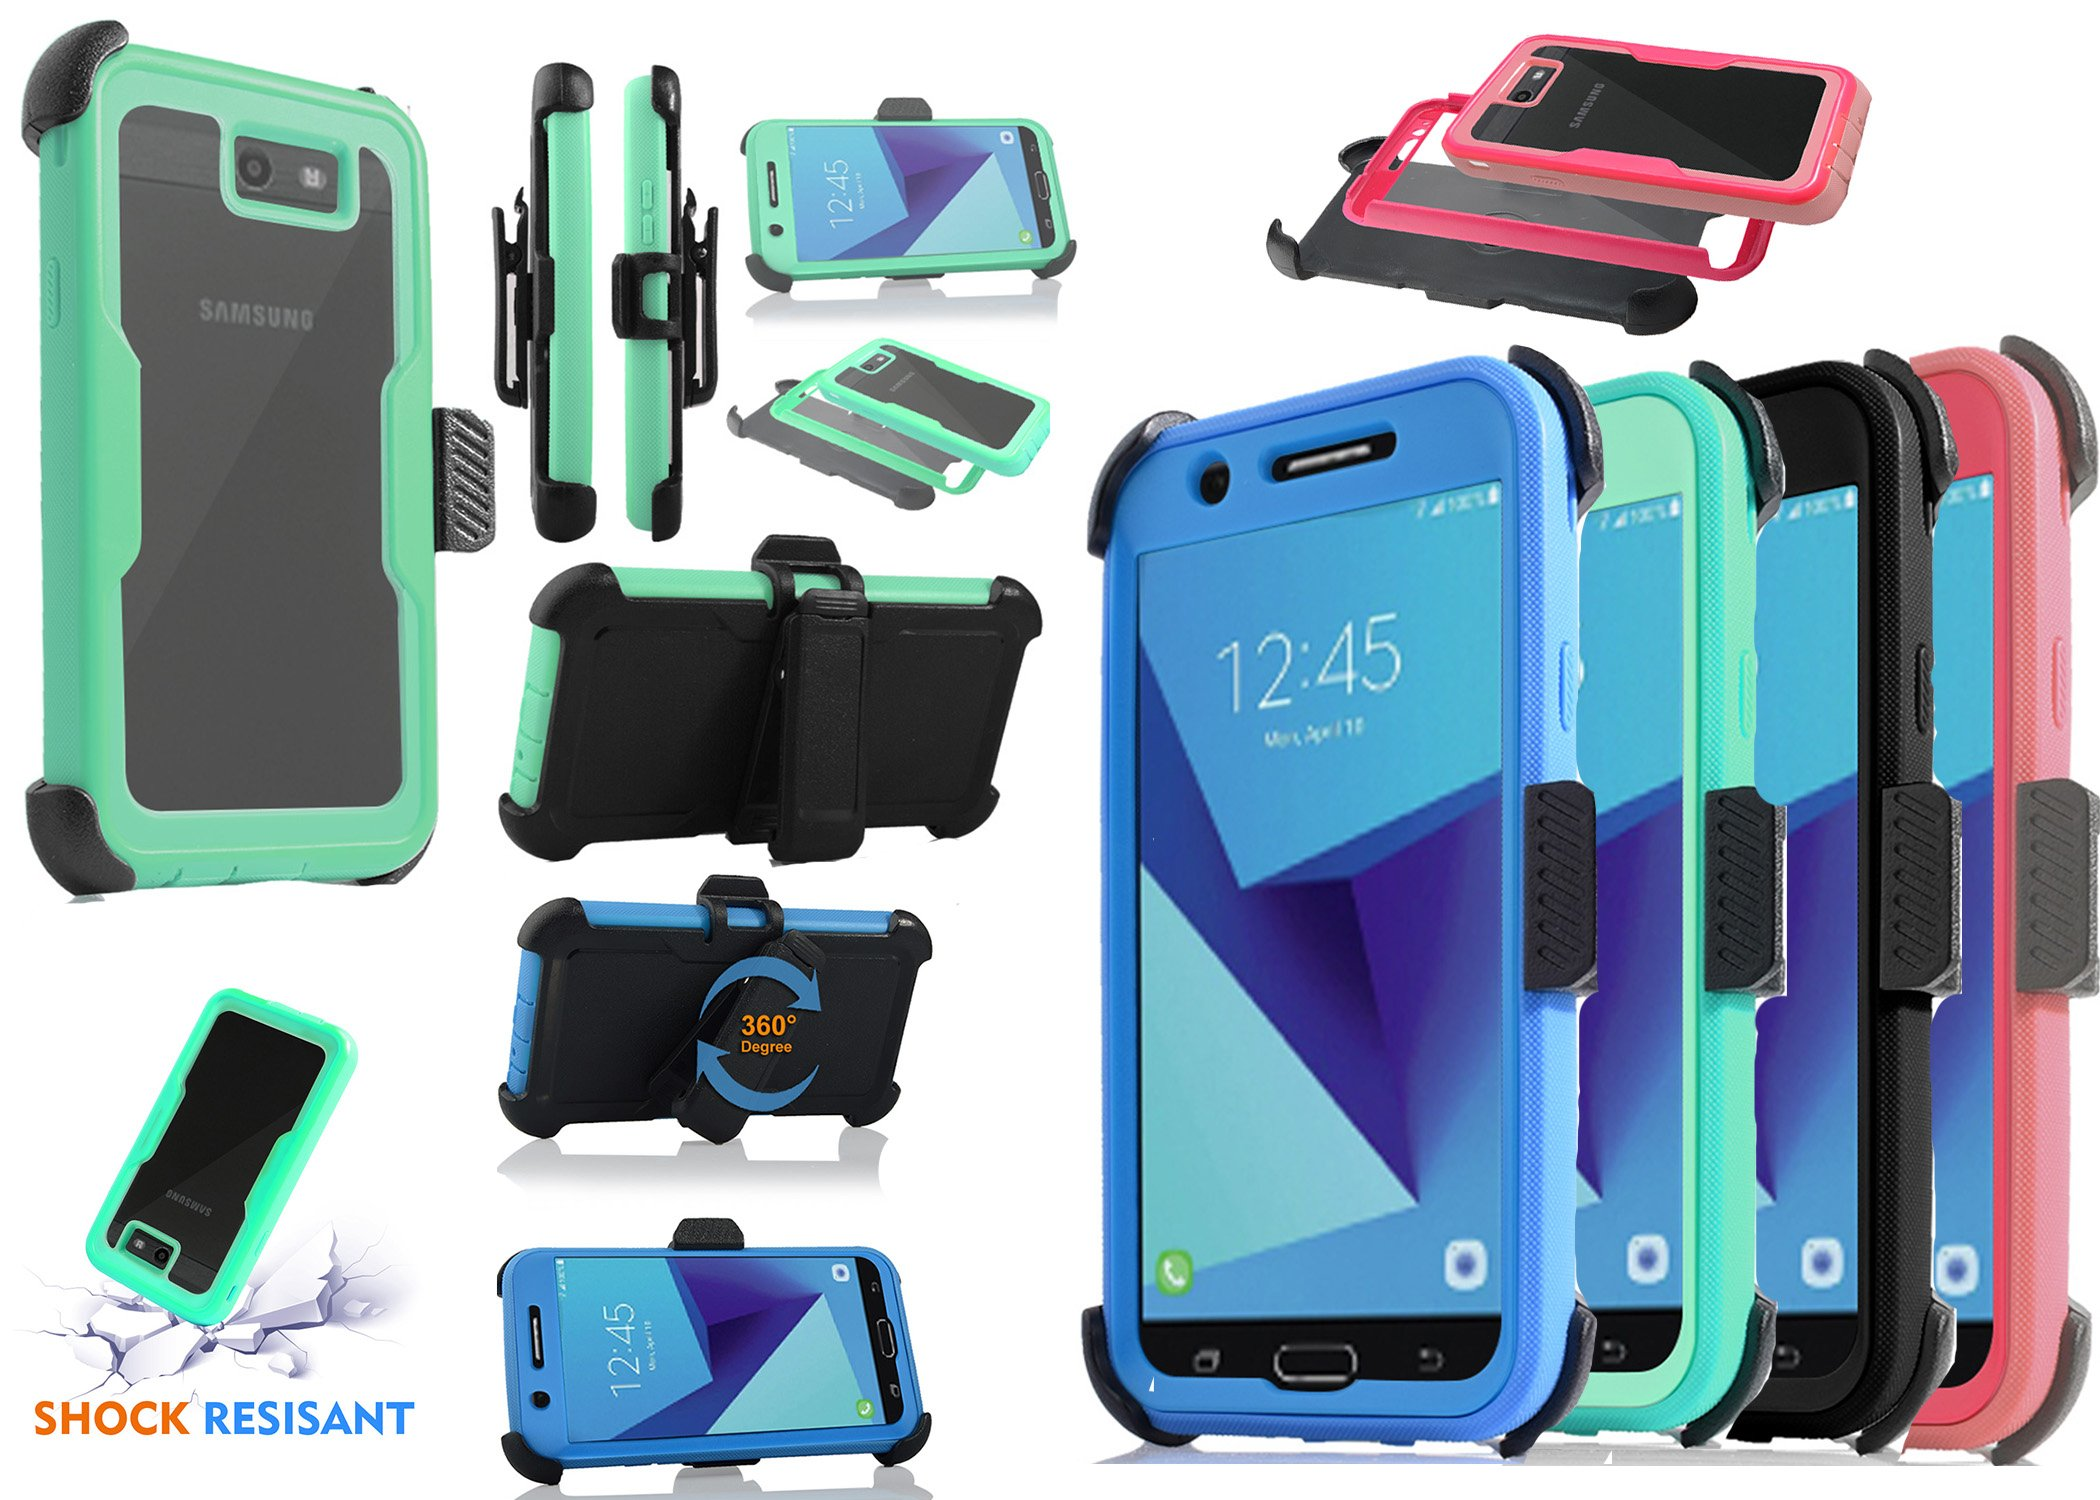 For Samsung Galaxy J7/Sky Pro/J7 Prime/J7V/J727/Perx/Halo Full Body Rugged Holster Explorer Armor Case with Built in Screen Protector (Black) by customerfirst (Image #6)